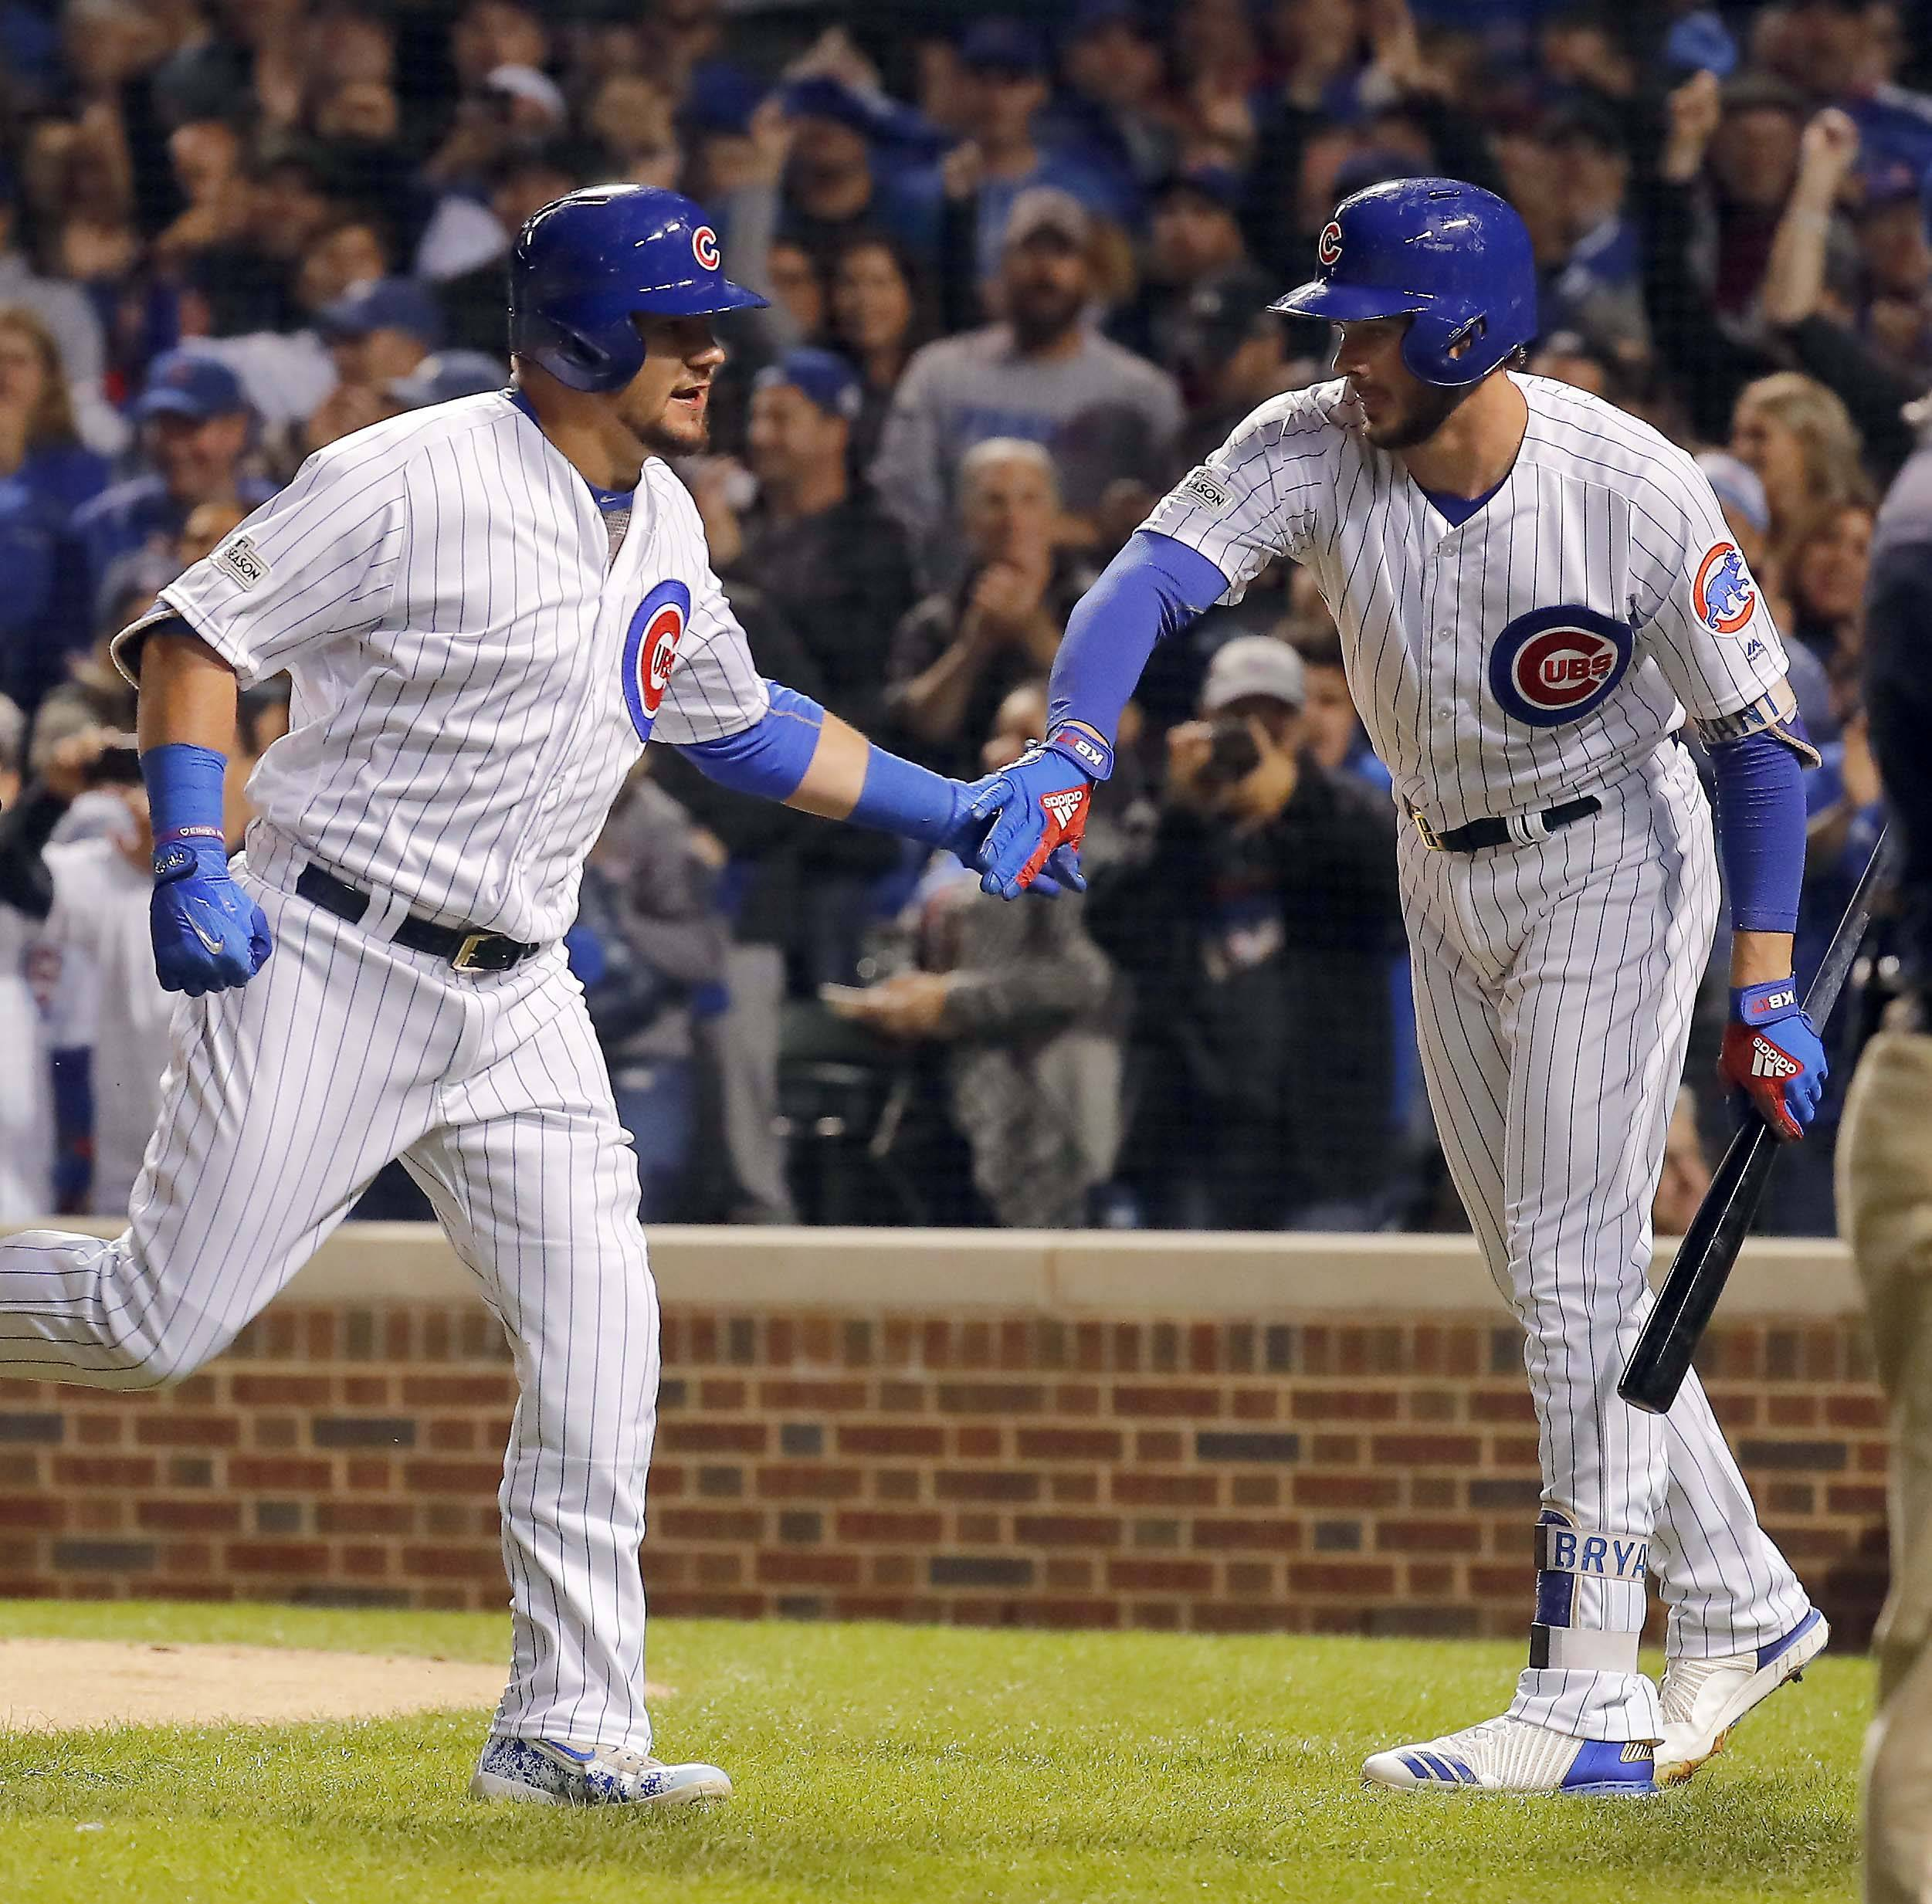 Chicago Cubs left fielder Kyle Schwarber (12) is greeted by Kris Bryant (17) after his first inning home run during Game 3 of the National League championship series. Schwarber will also start in Game 4.